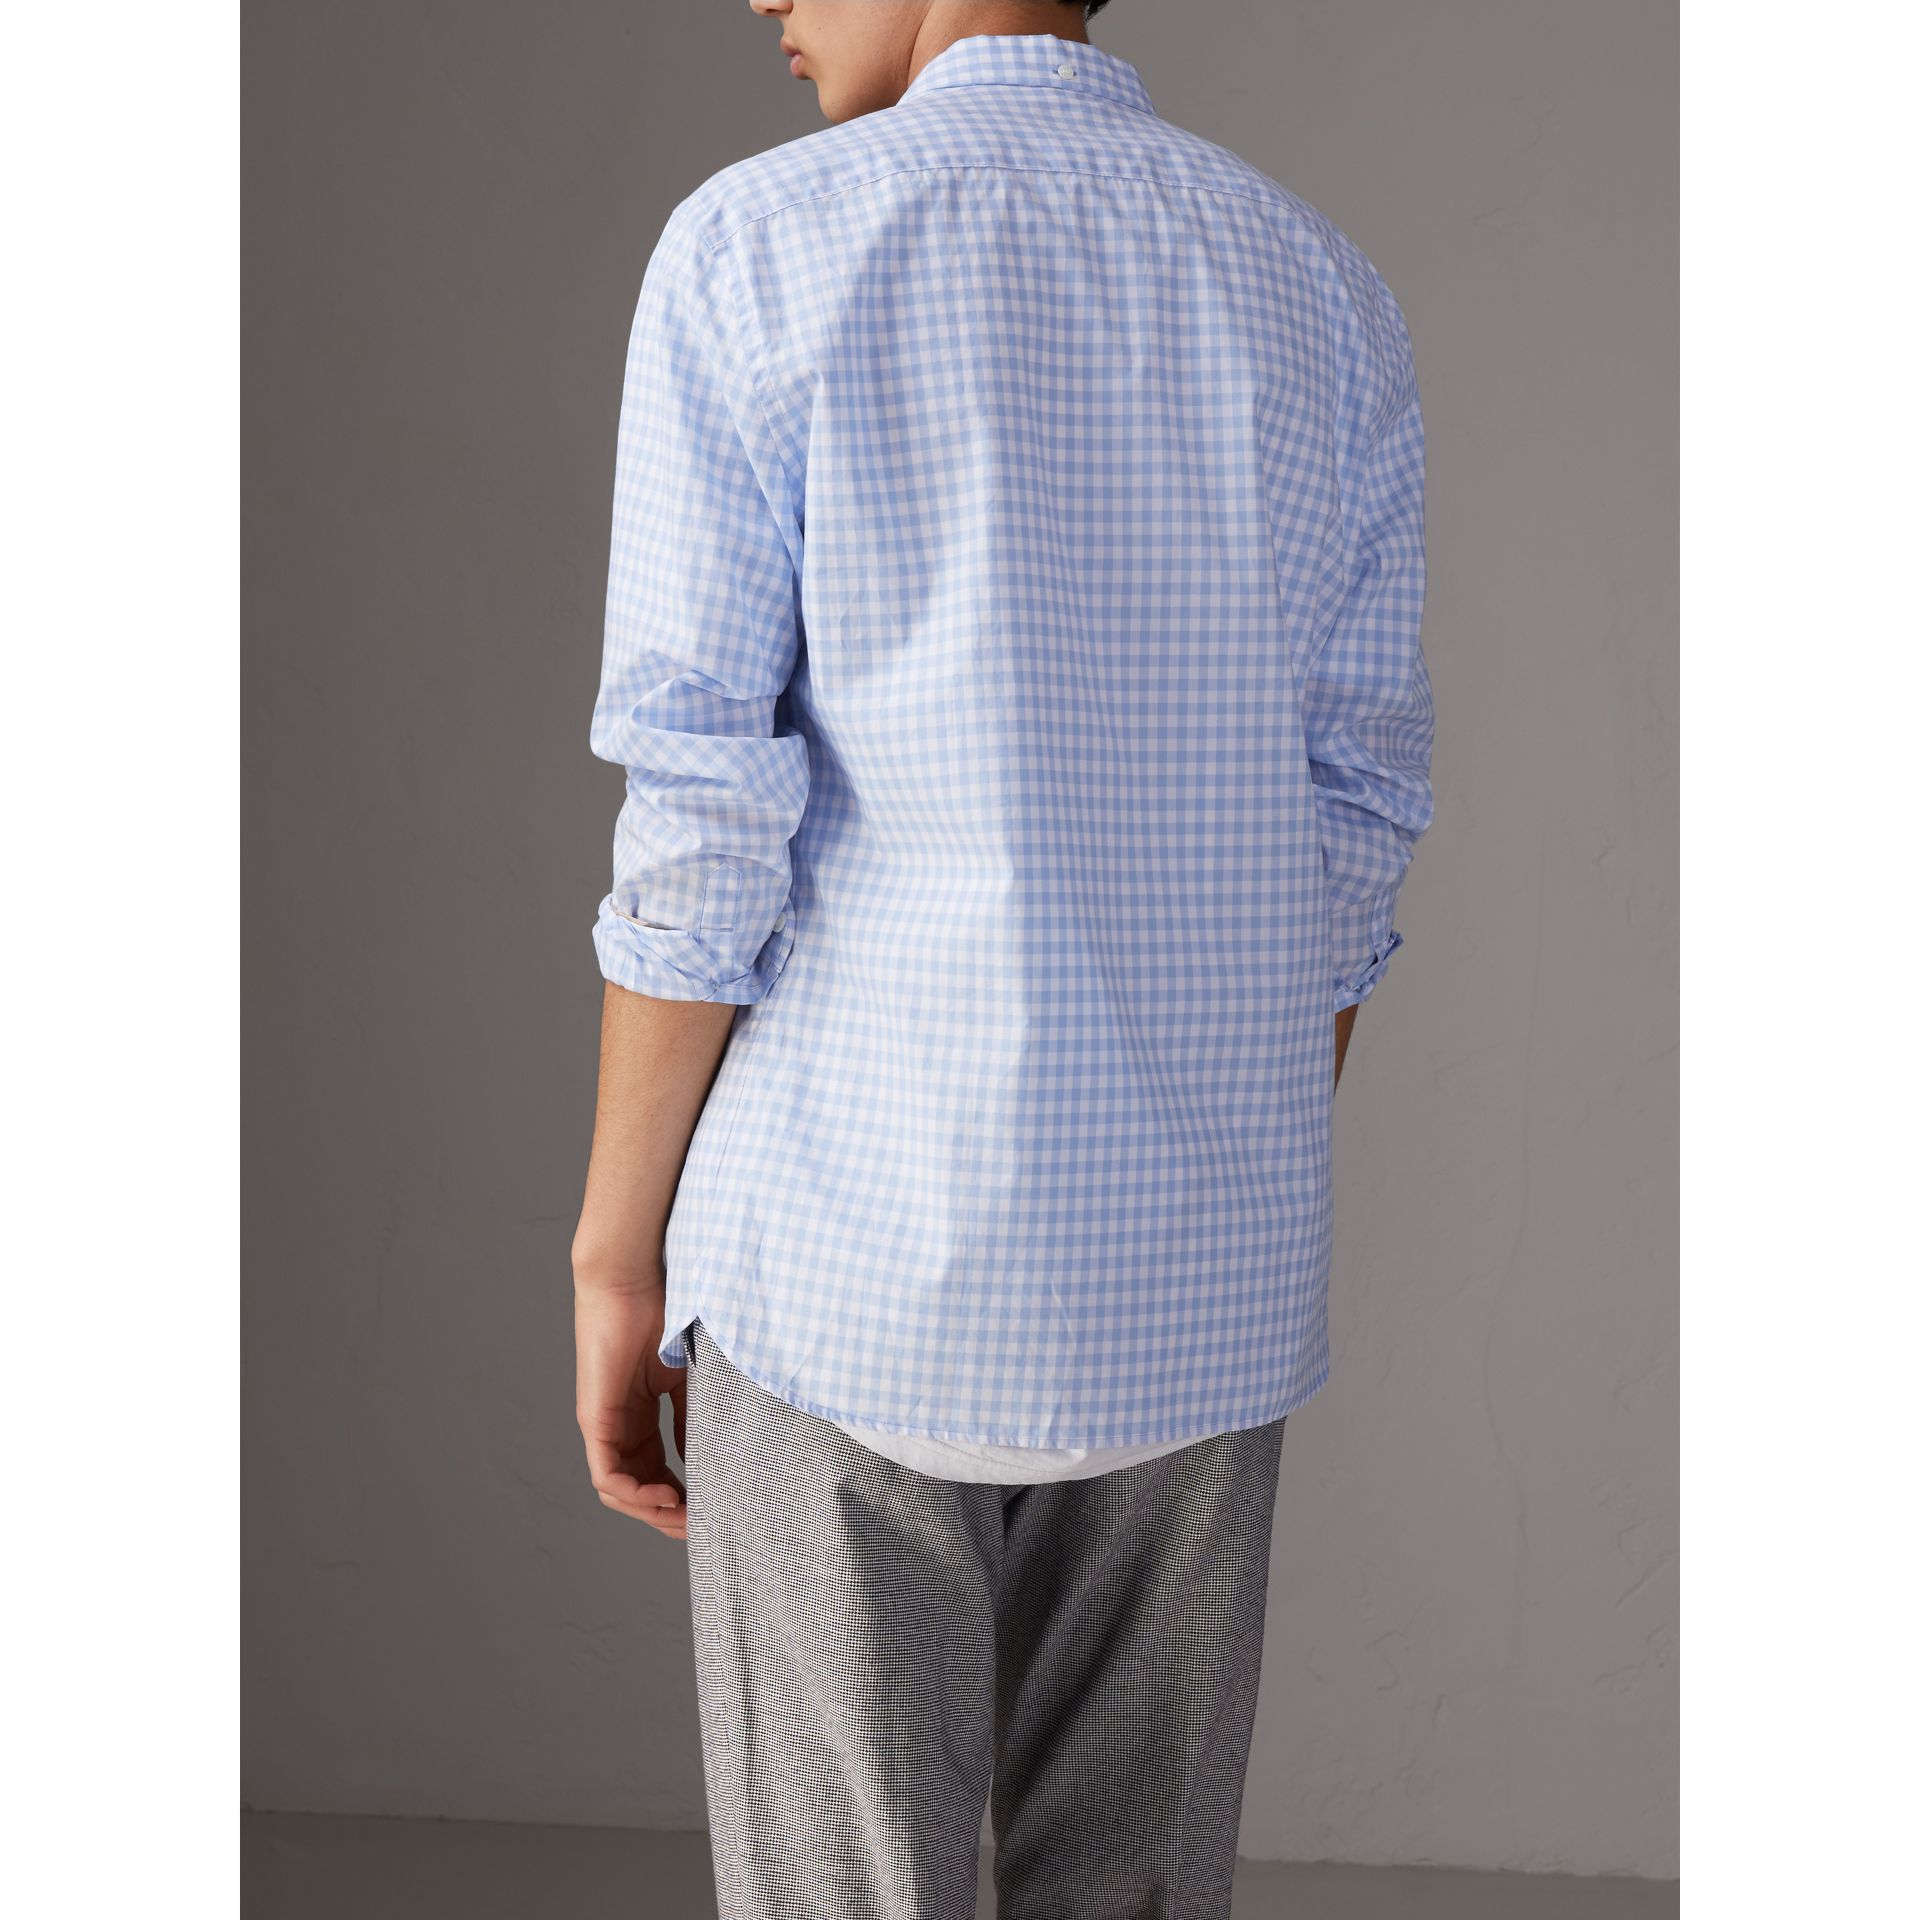 Button-down Collar Gingham Cotton Shirt in Pale Blue - Men | Burberry United Kingdom - gallery image 2